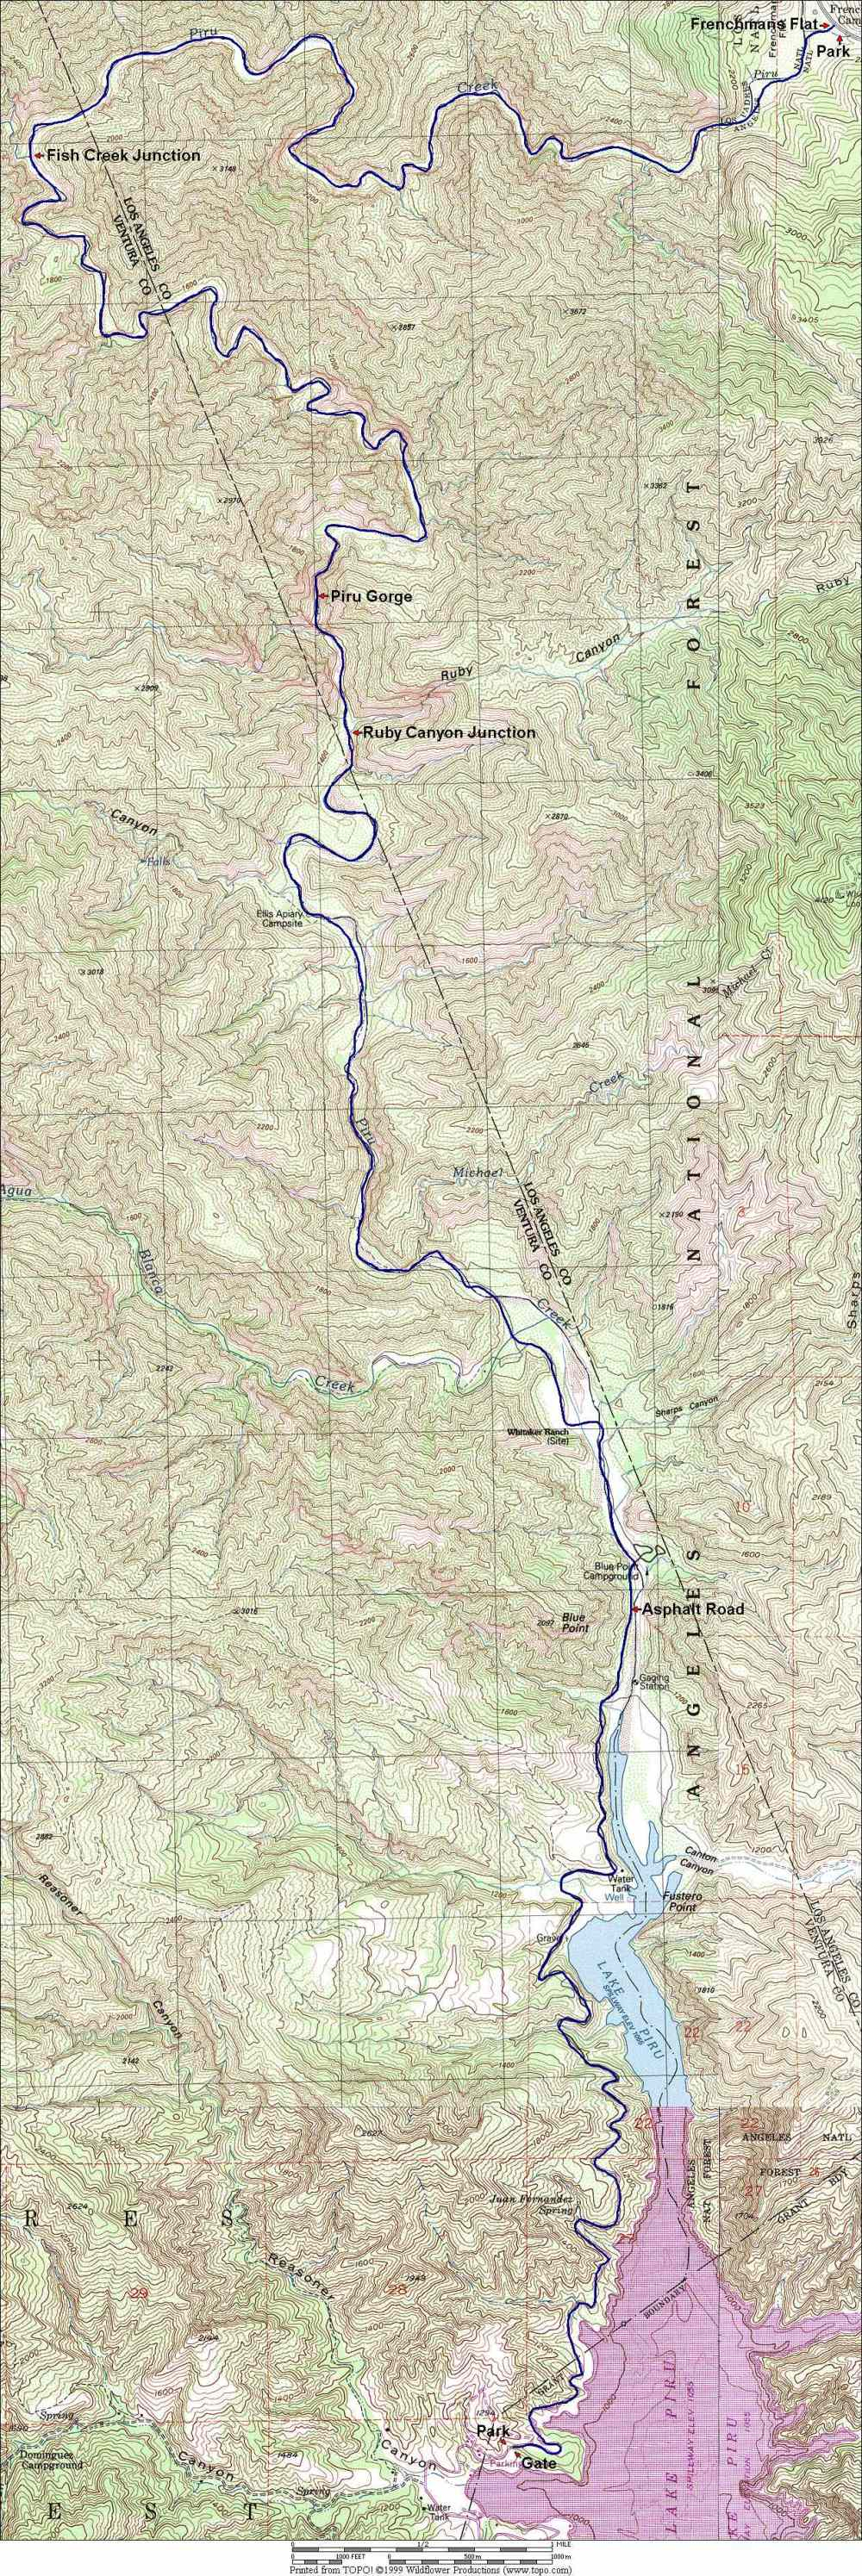 Piru Creek map